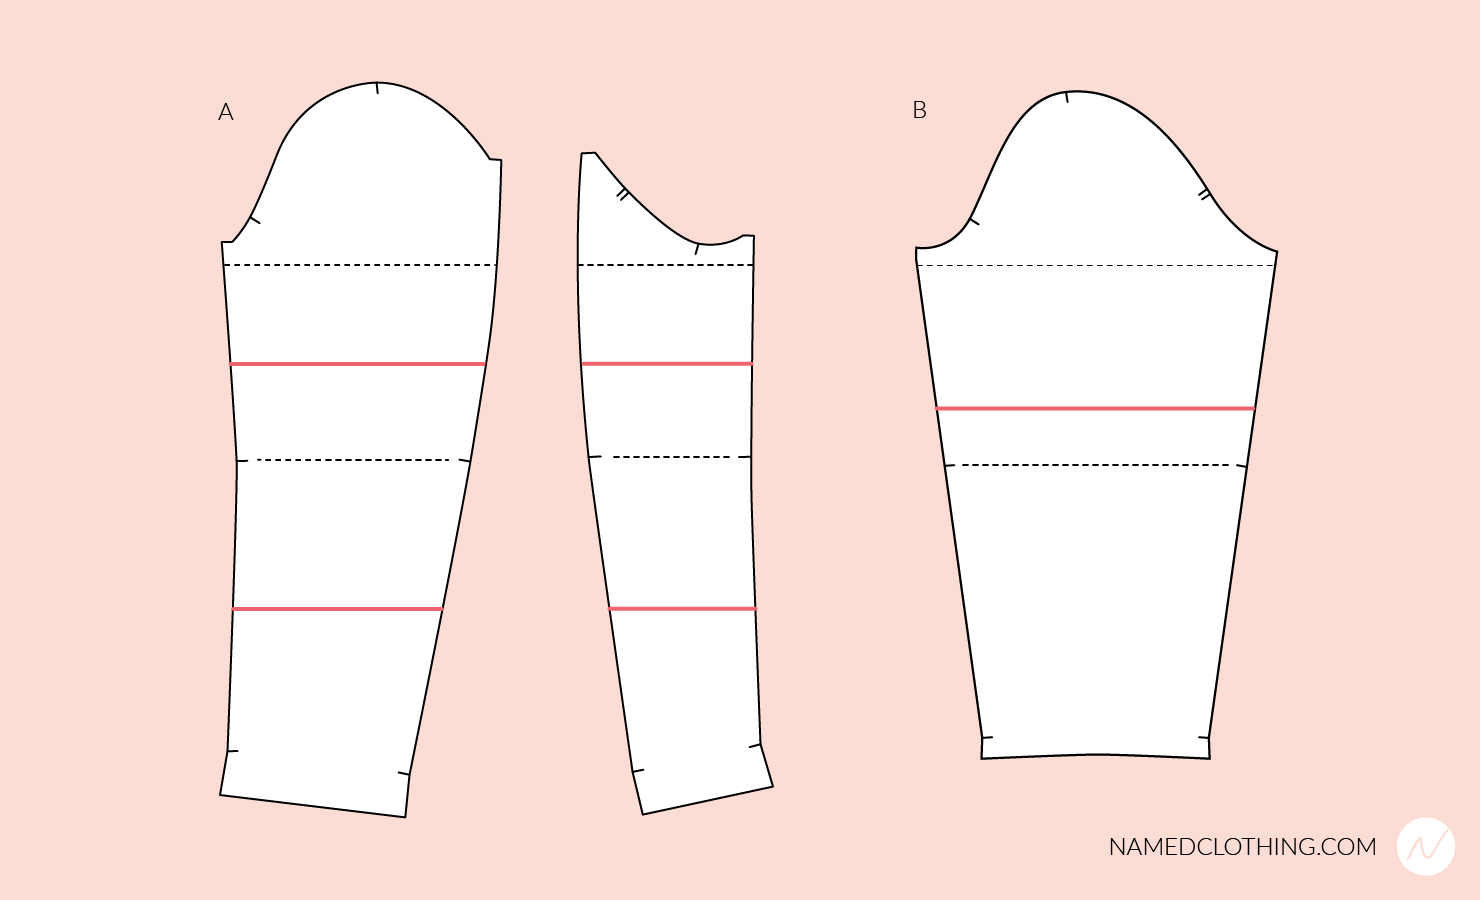 Altering the arm length of the pattern